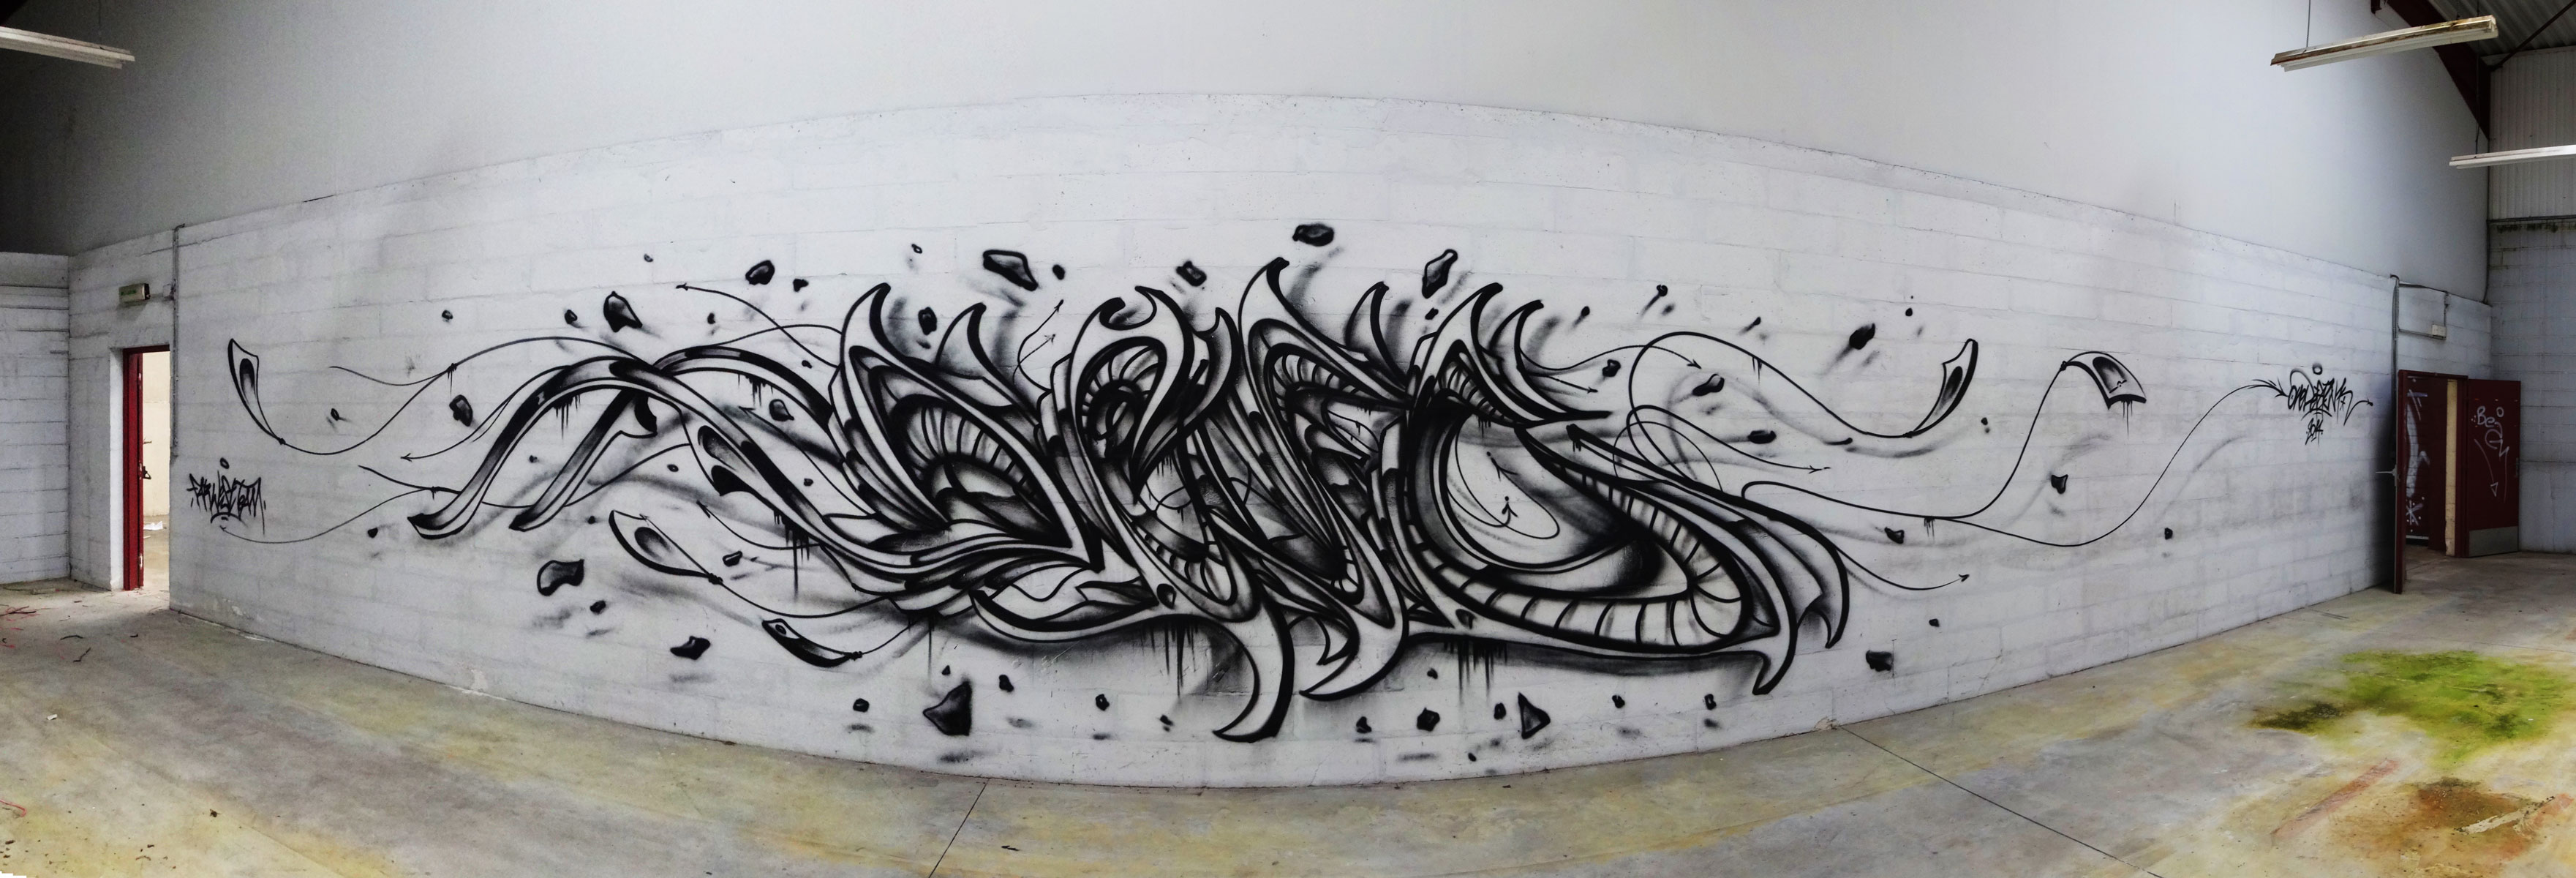 2014_deft_virgin_graffiti_lettrage_2